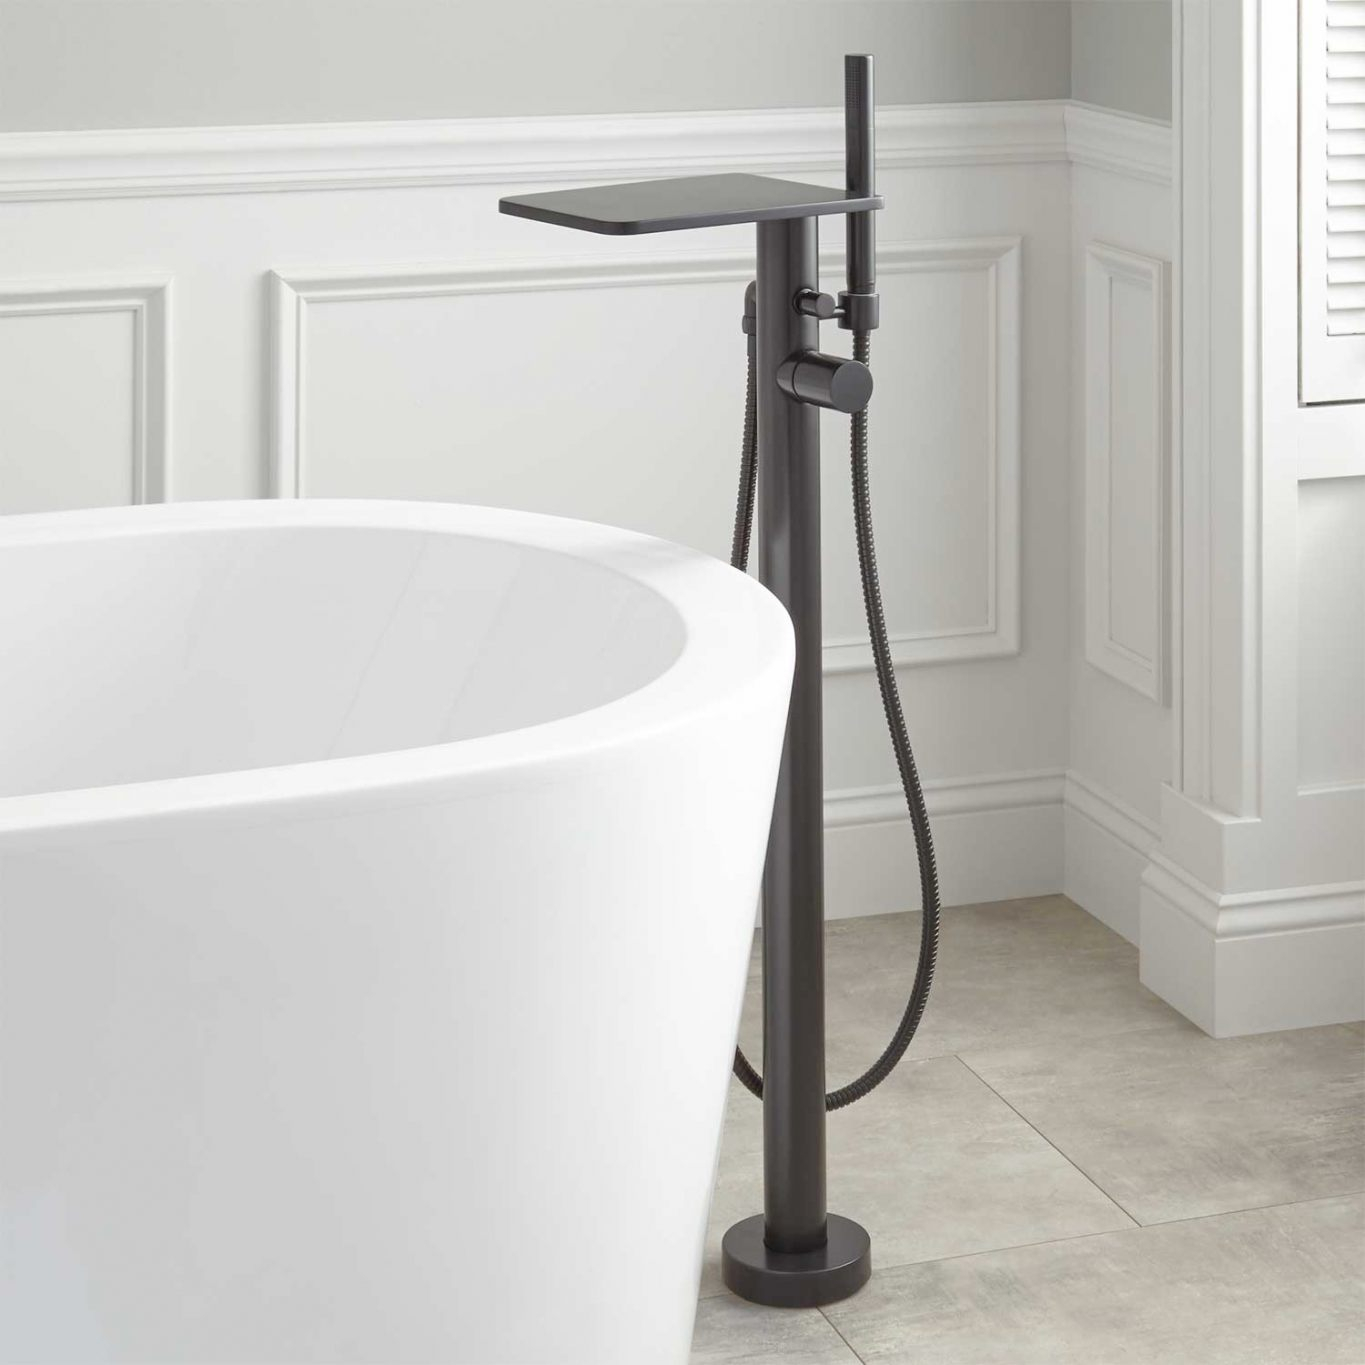 Superbe Knox Freestanding Tub Faucet Freestanding Bathtub Faucet 4 Within  Proportions 1365 X 1365